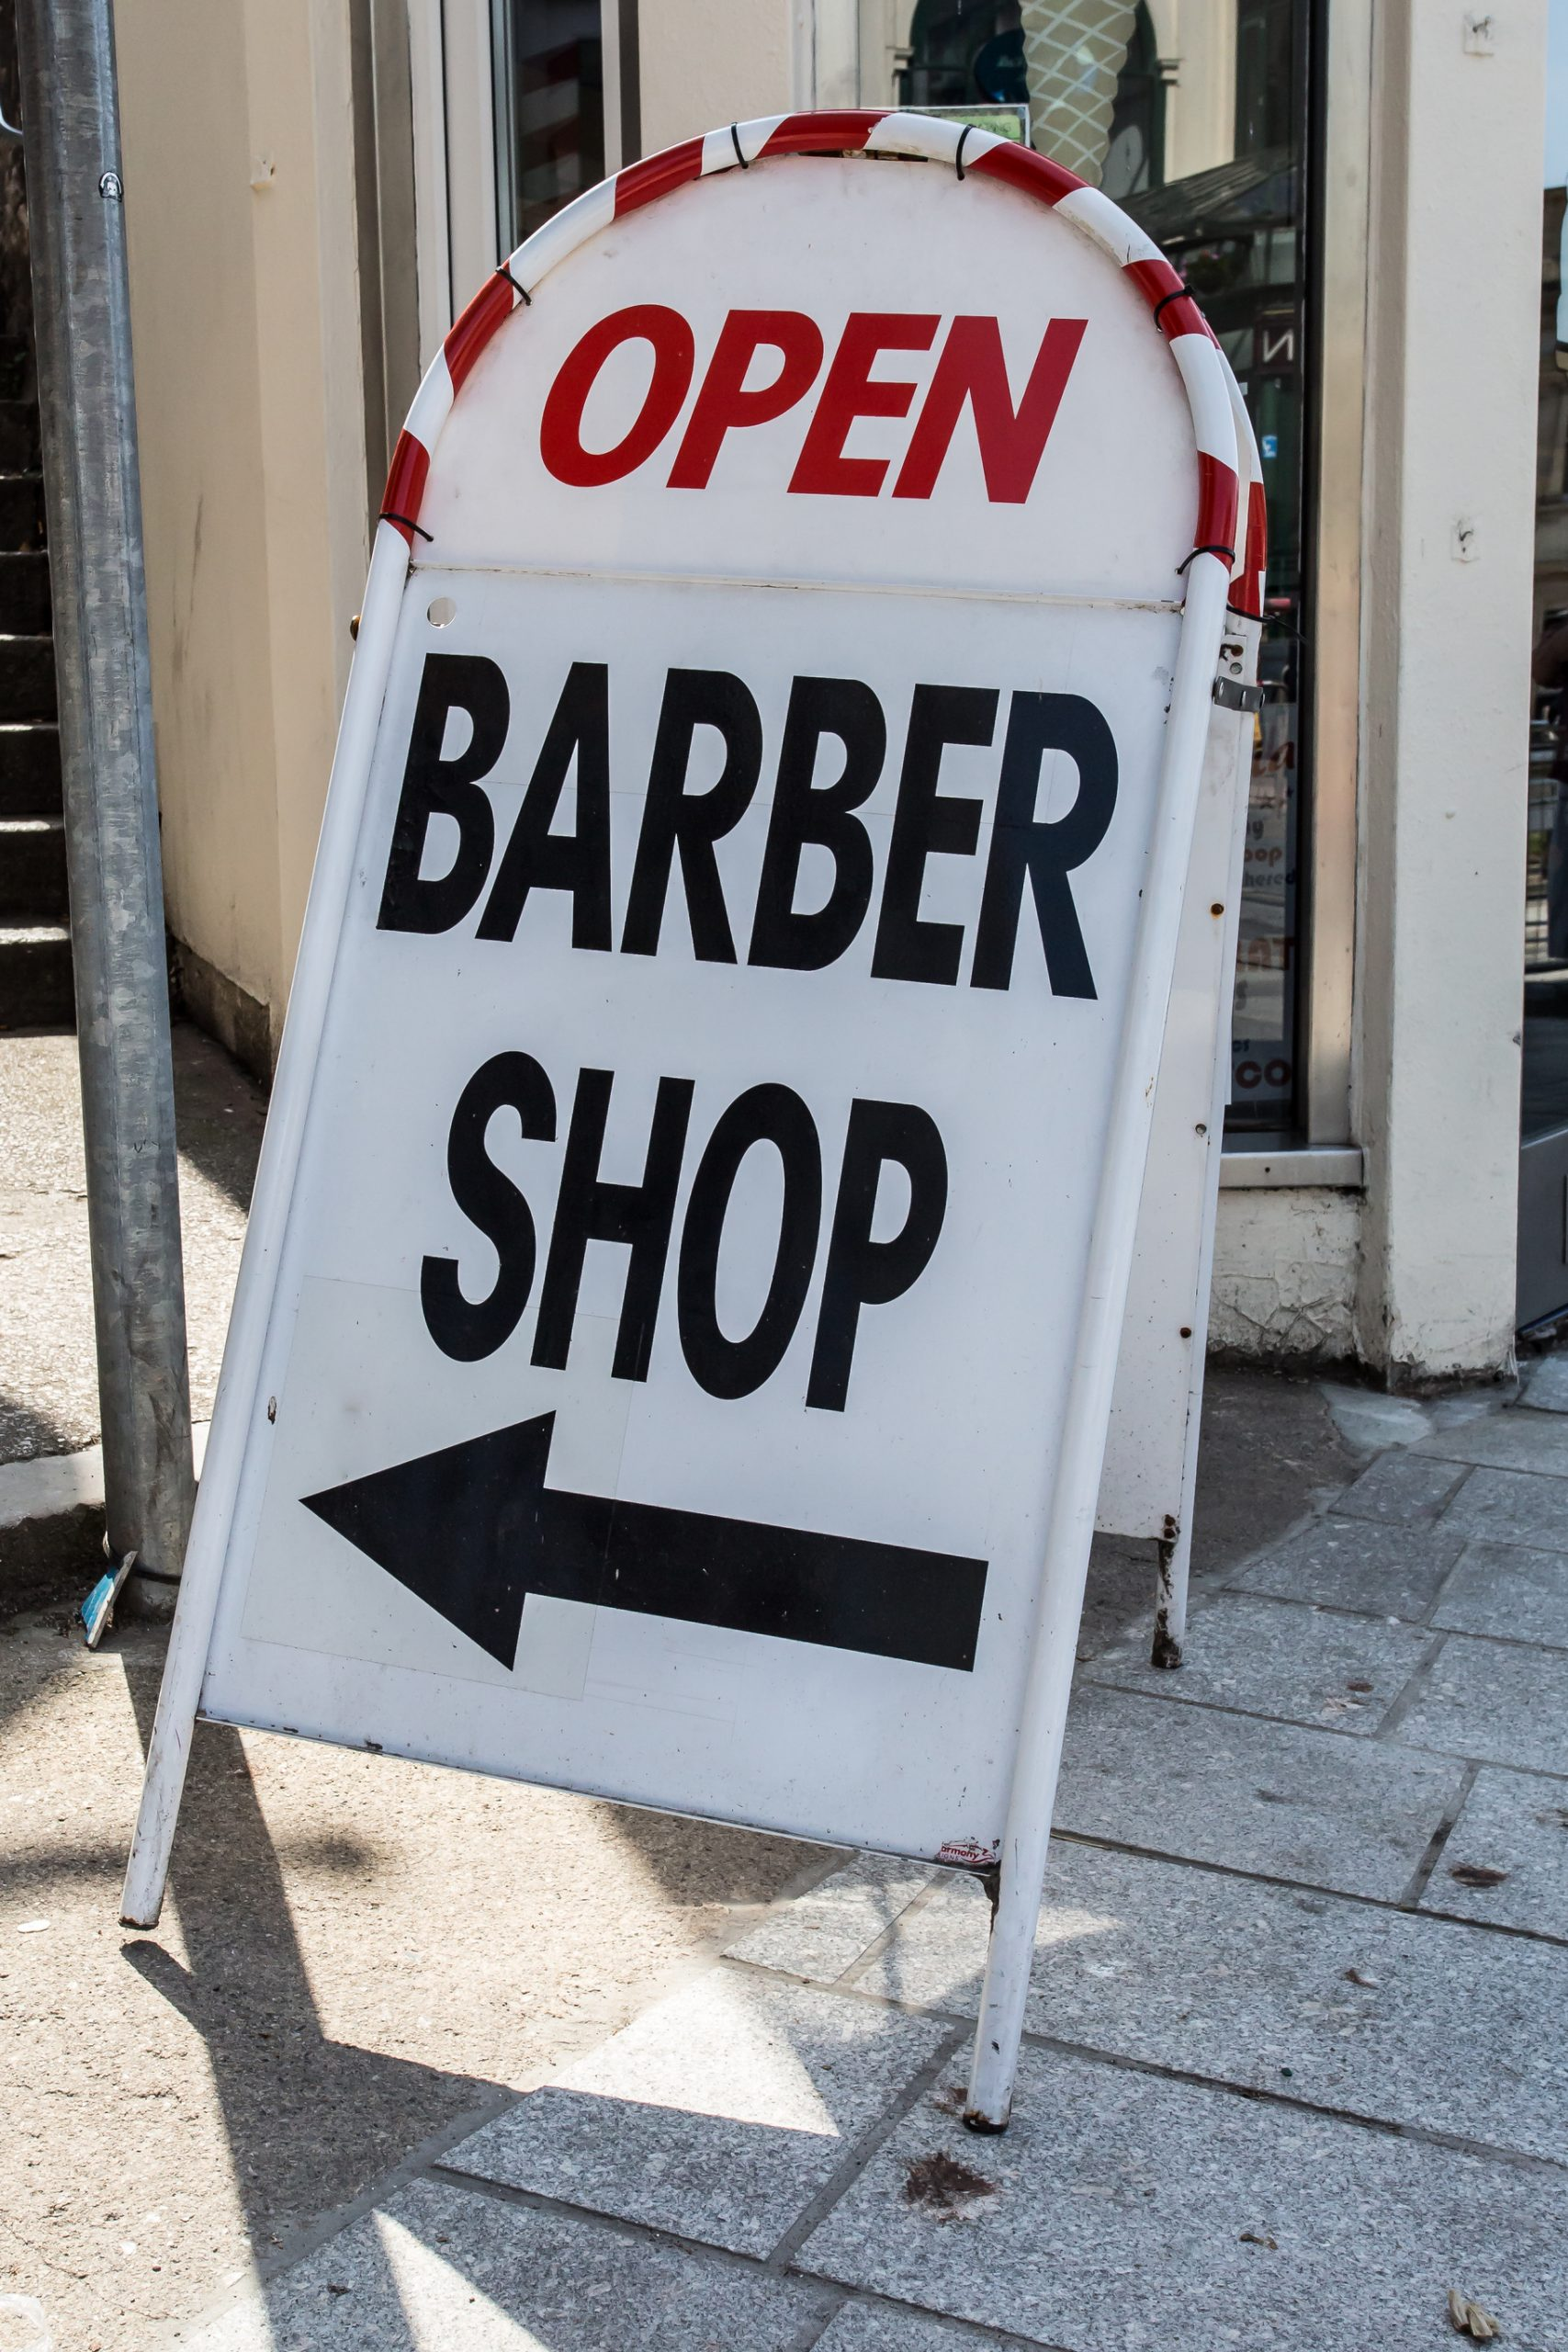 ... arizona board of barbers regulates those engaged in the barber